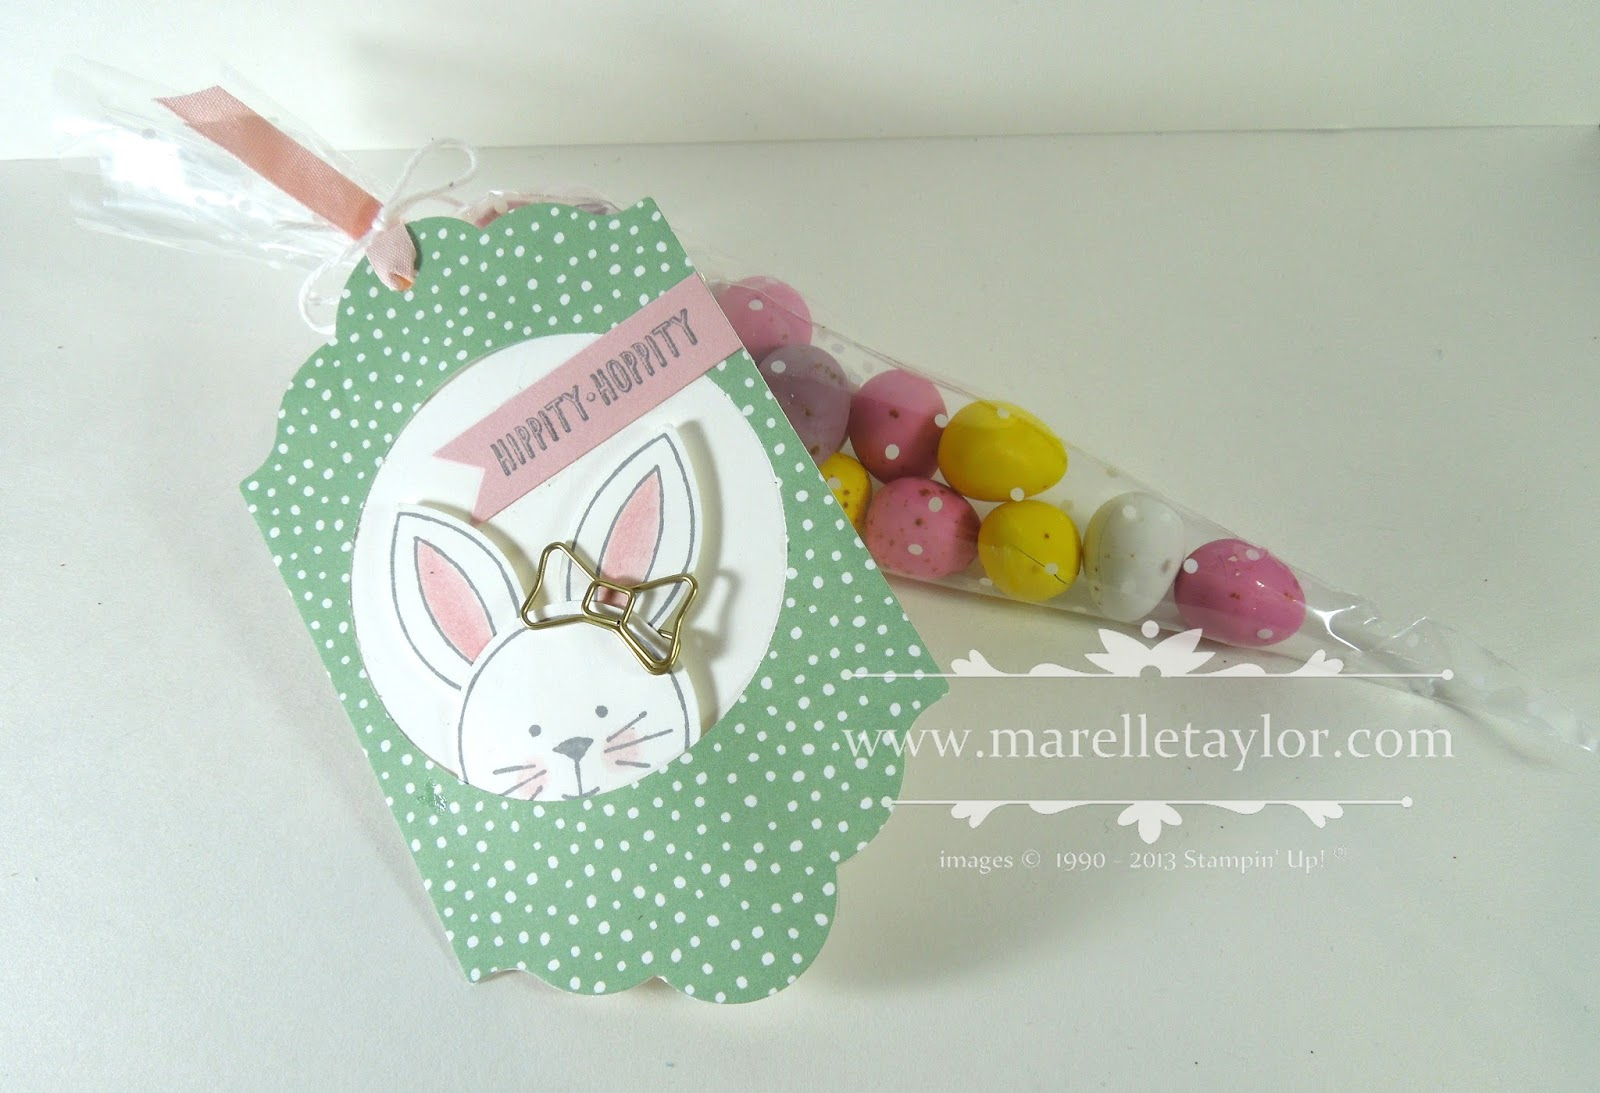 Marelle taylor stampin up demonstrator sydney australia friends i always like to have a few cute easter tags on hand ready to attach to an easter gift when i saw the tag on page 46 i knew i had to negle Images